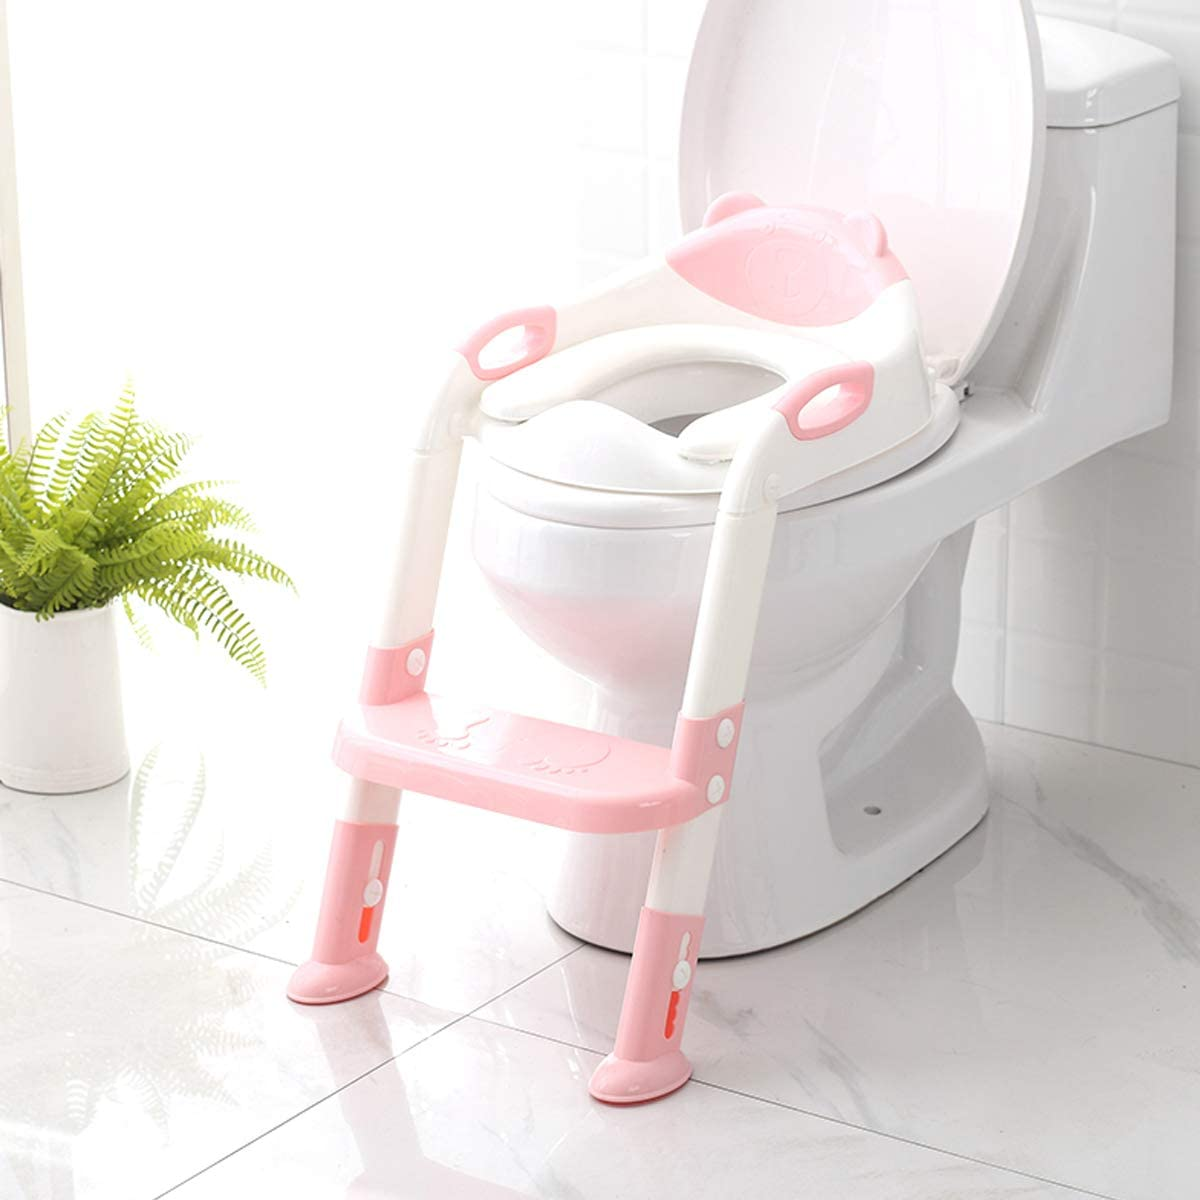 Potty Training Seat with Step Stool Ladder,SKYROKU Potty Training Toilet for Kids Boys Girls Toddlers-Comfortable Safe Potty Seat with Anti-Slip Pads Ladder Pink